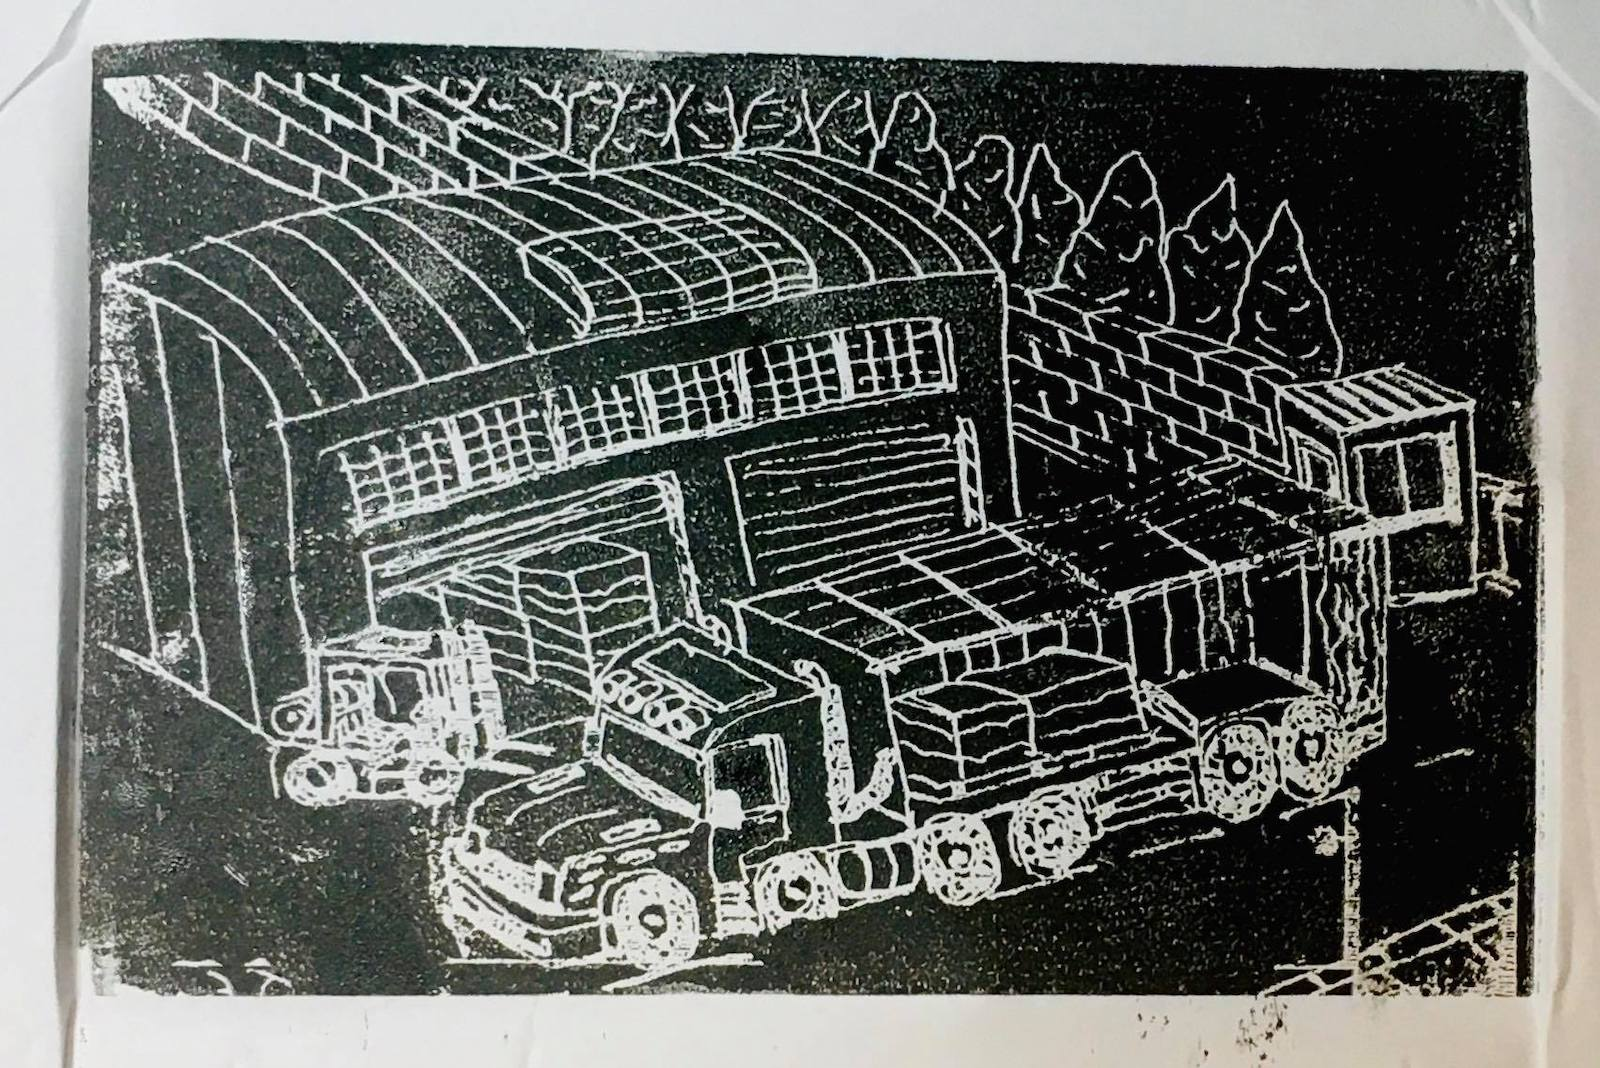 black and while lino cut of truck